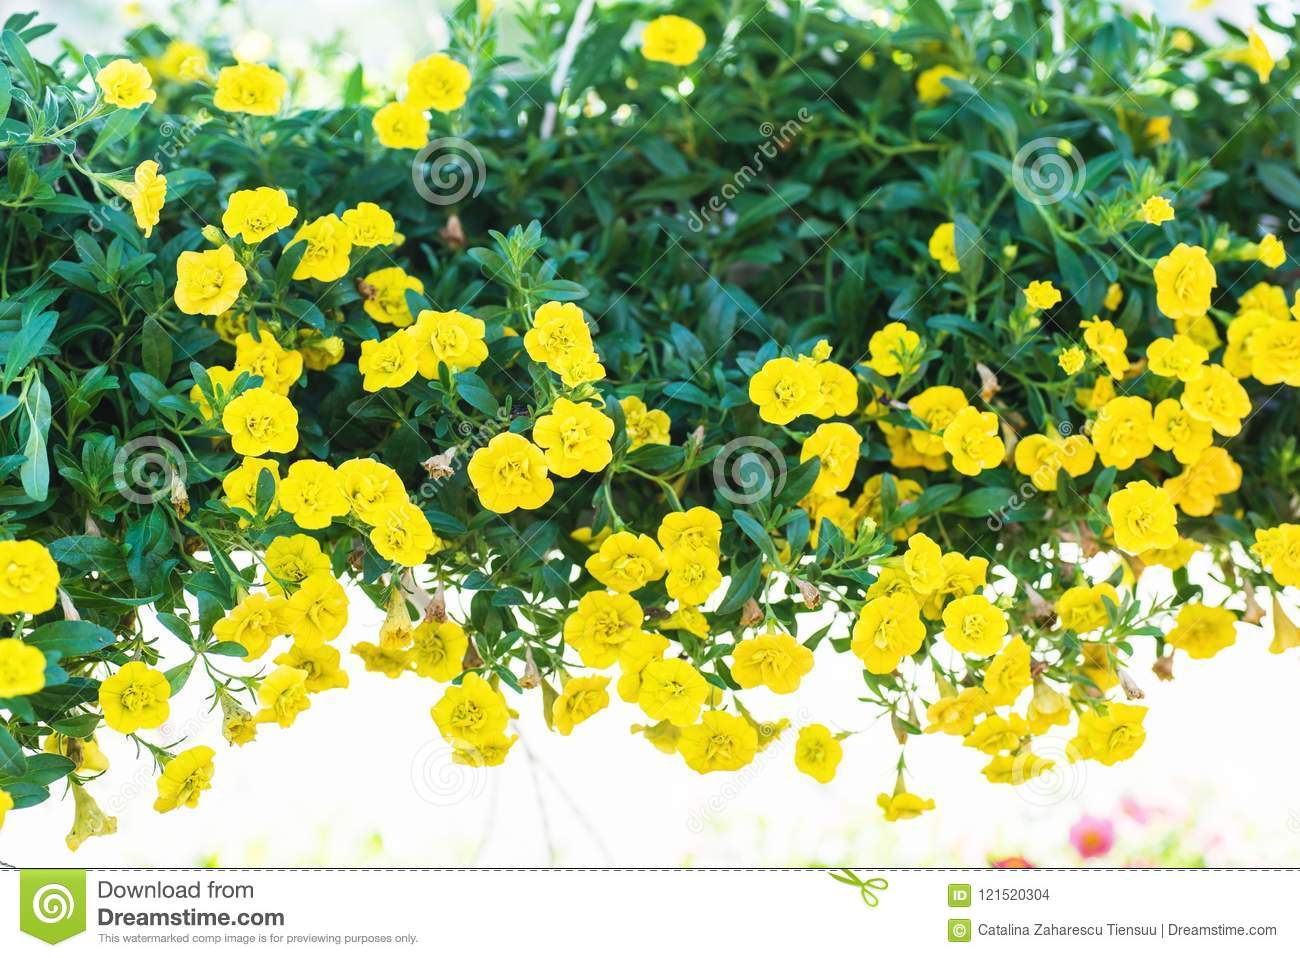 Patio Hybrid Petunia With Small Yellow Flowers In A Suspended Pot